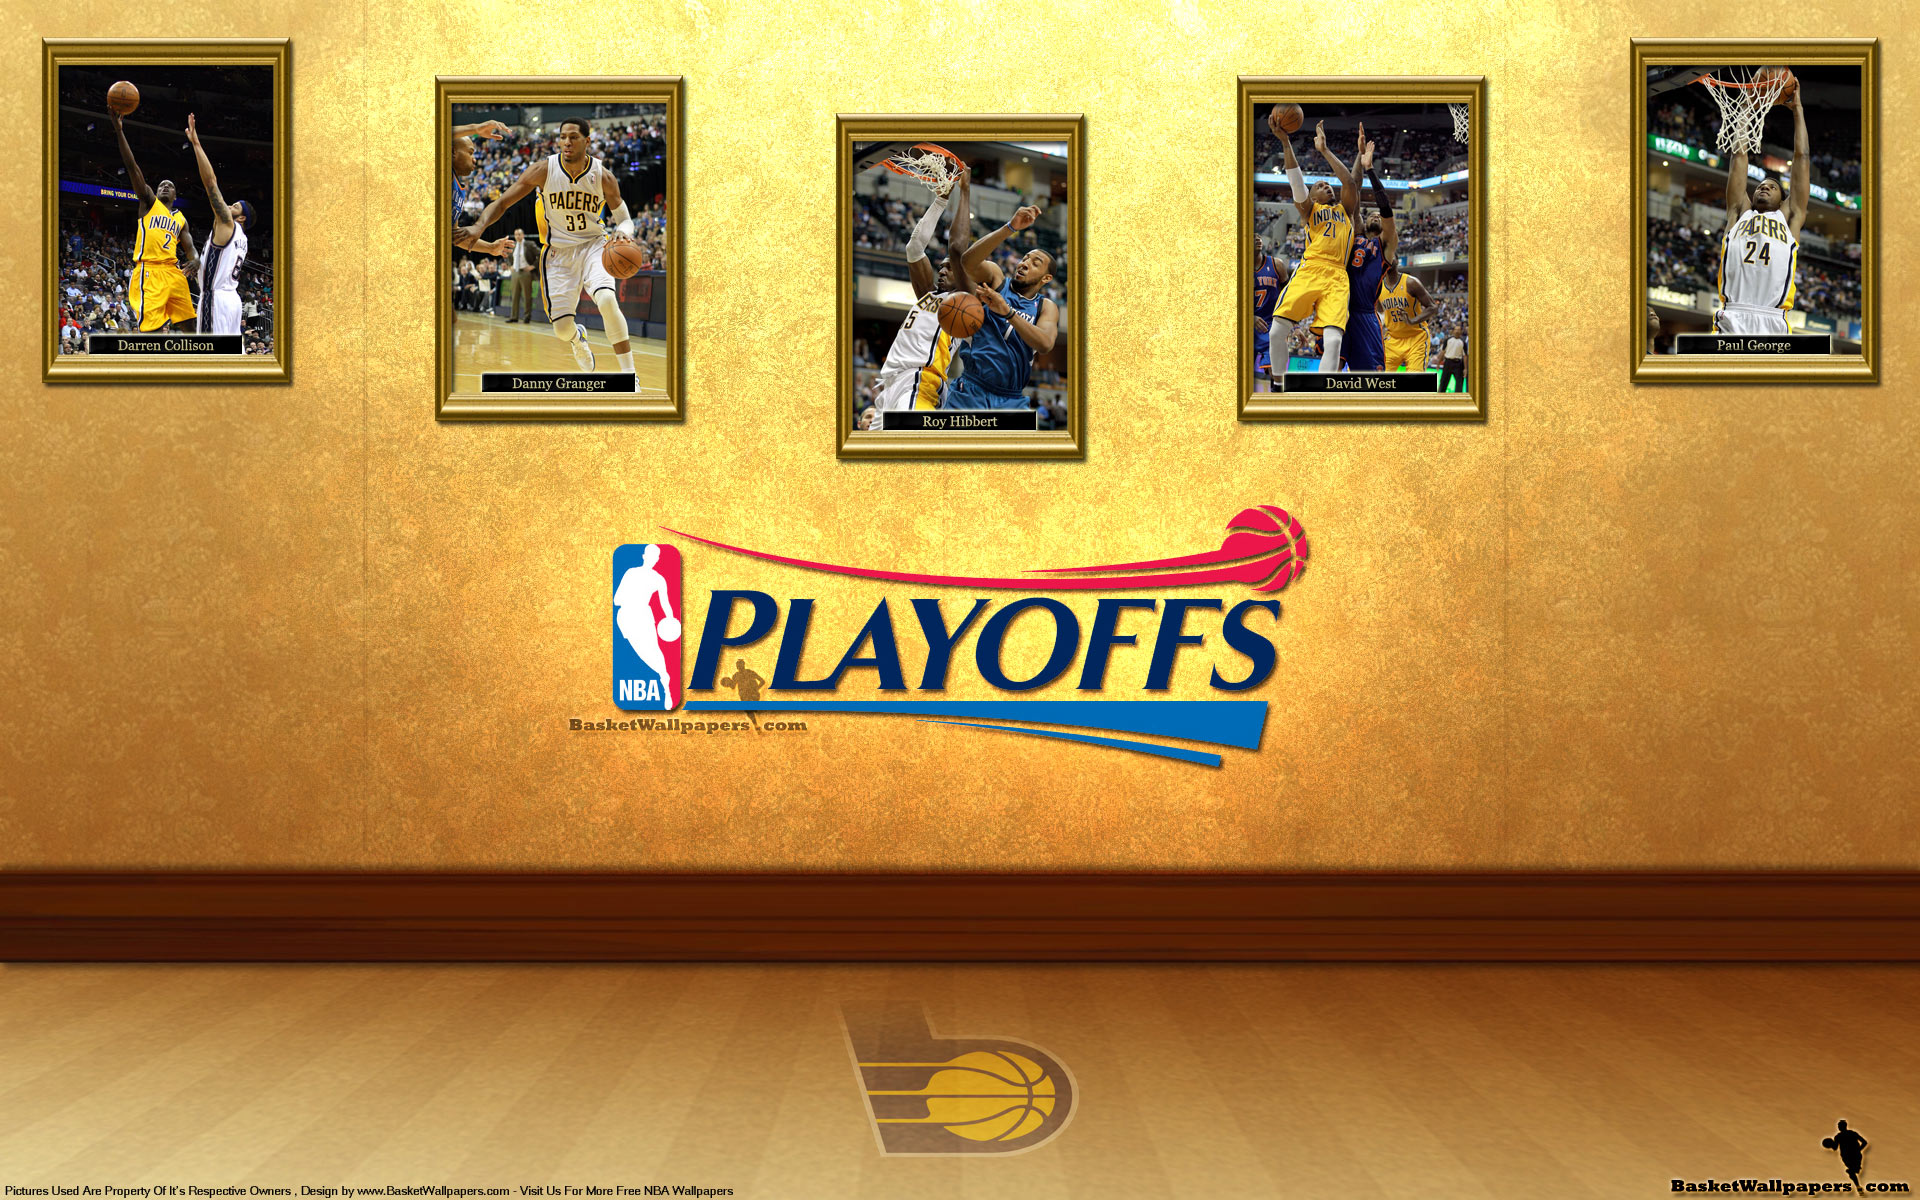 Indiana Pacers See You In Playoffs 2012 Wallpaper   Basketball ...